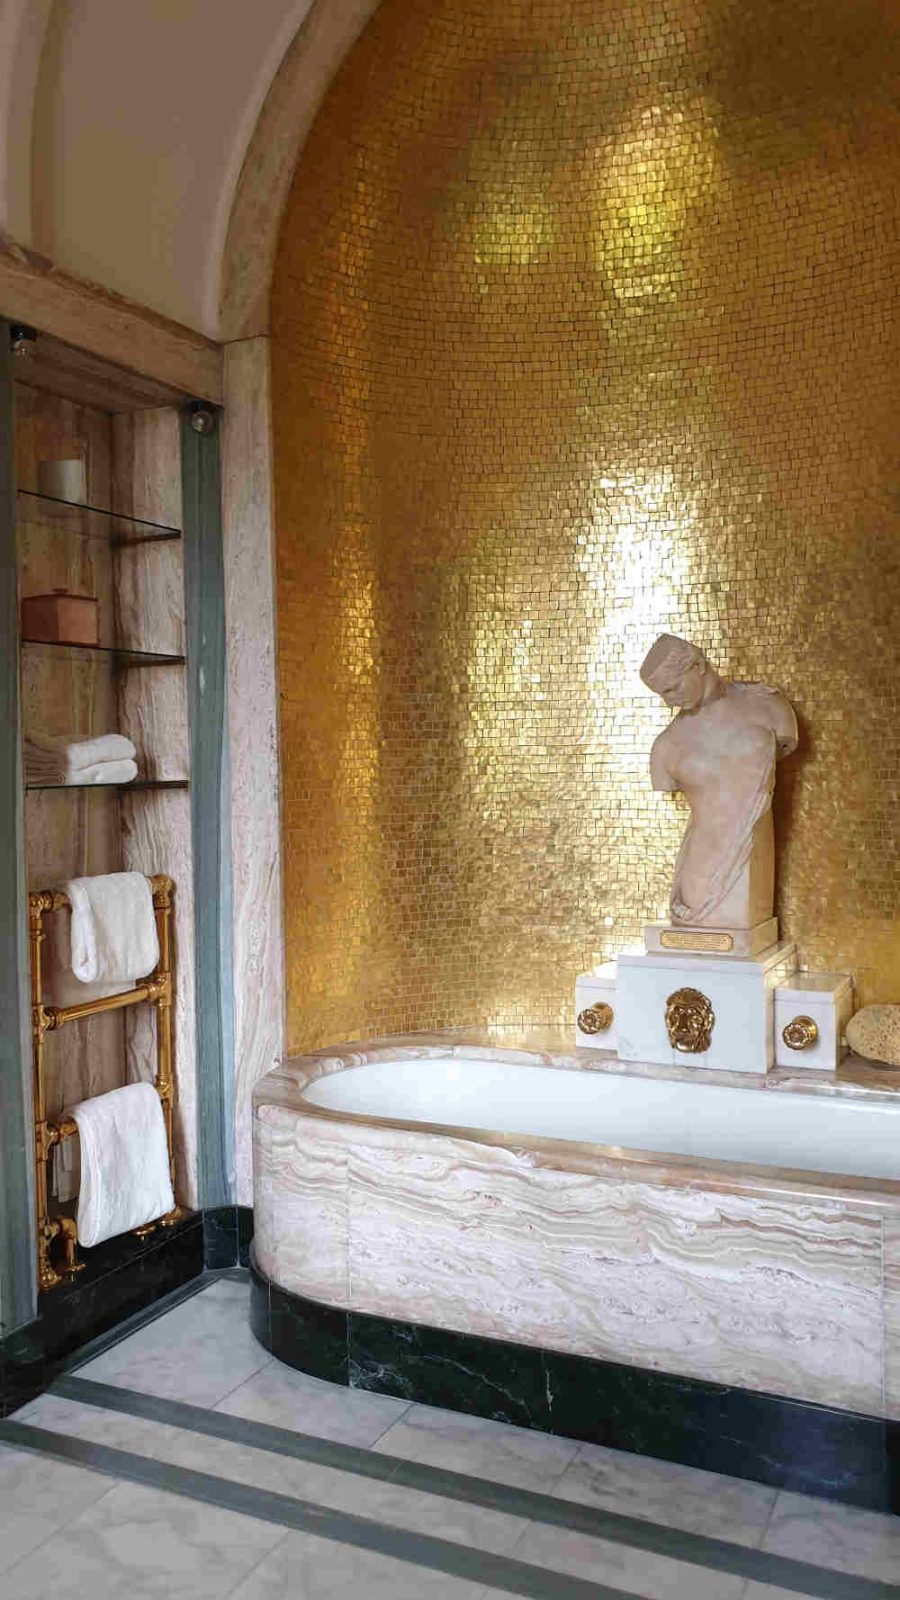 Virginia Courtauld's bathroom at Eltham